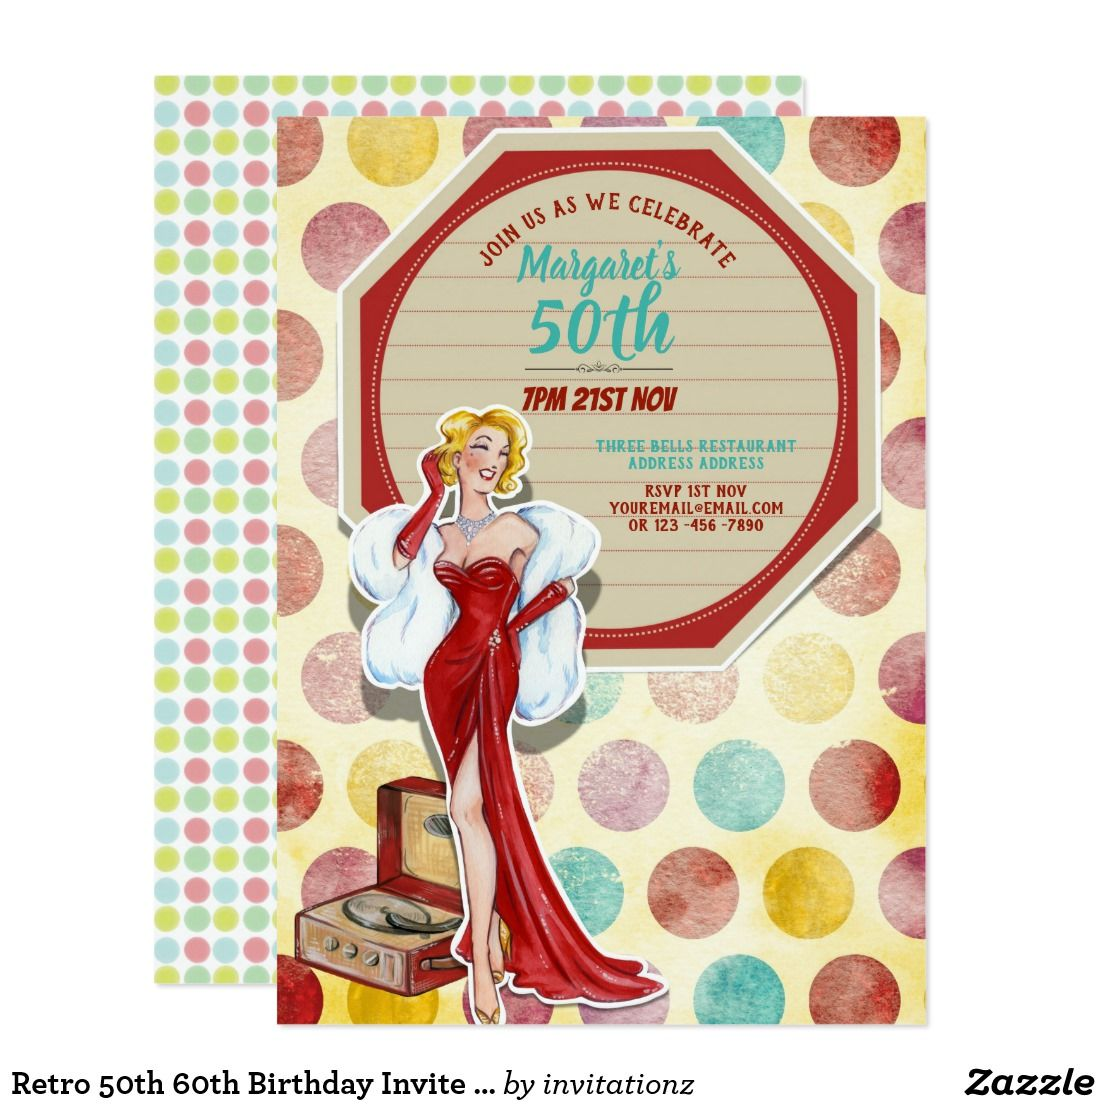 Retro 50th 60th Birthday Invite Elegant Woman | Gift Ideas Generator ...